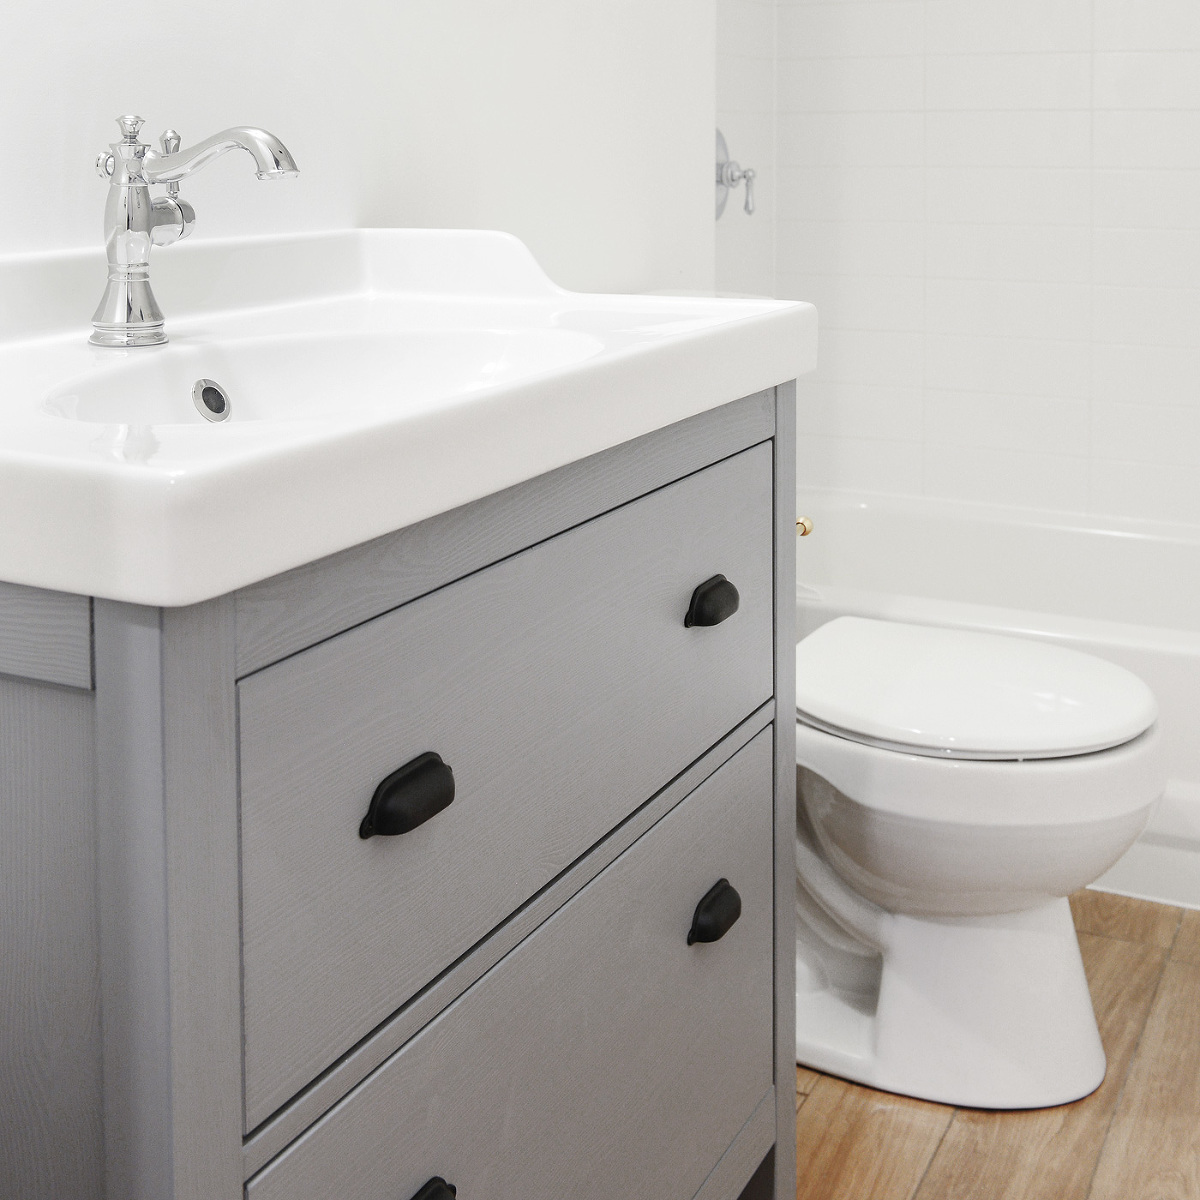 Ikea Hemnes Bathroom Vanity What Makes An Ikea Vanity Stand Out Above The Rest